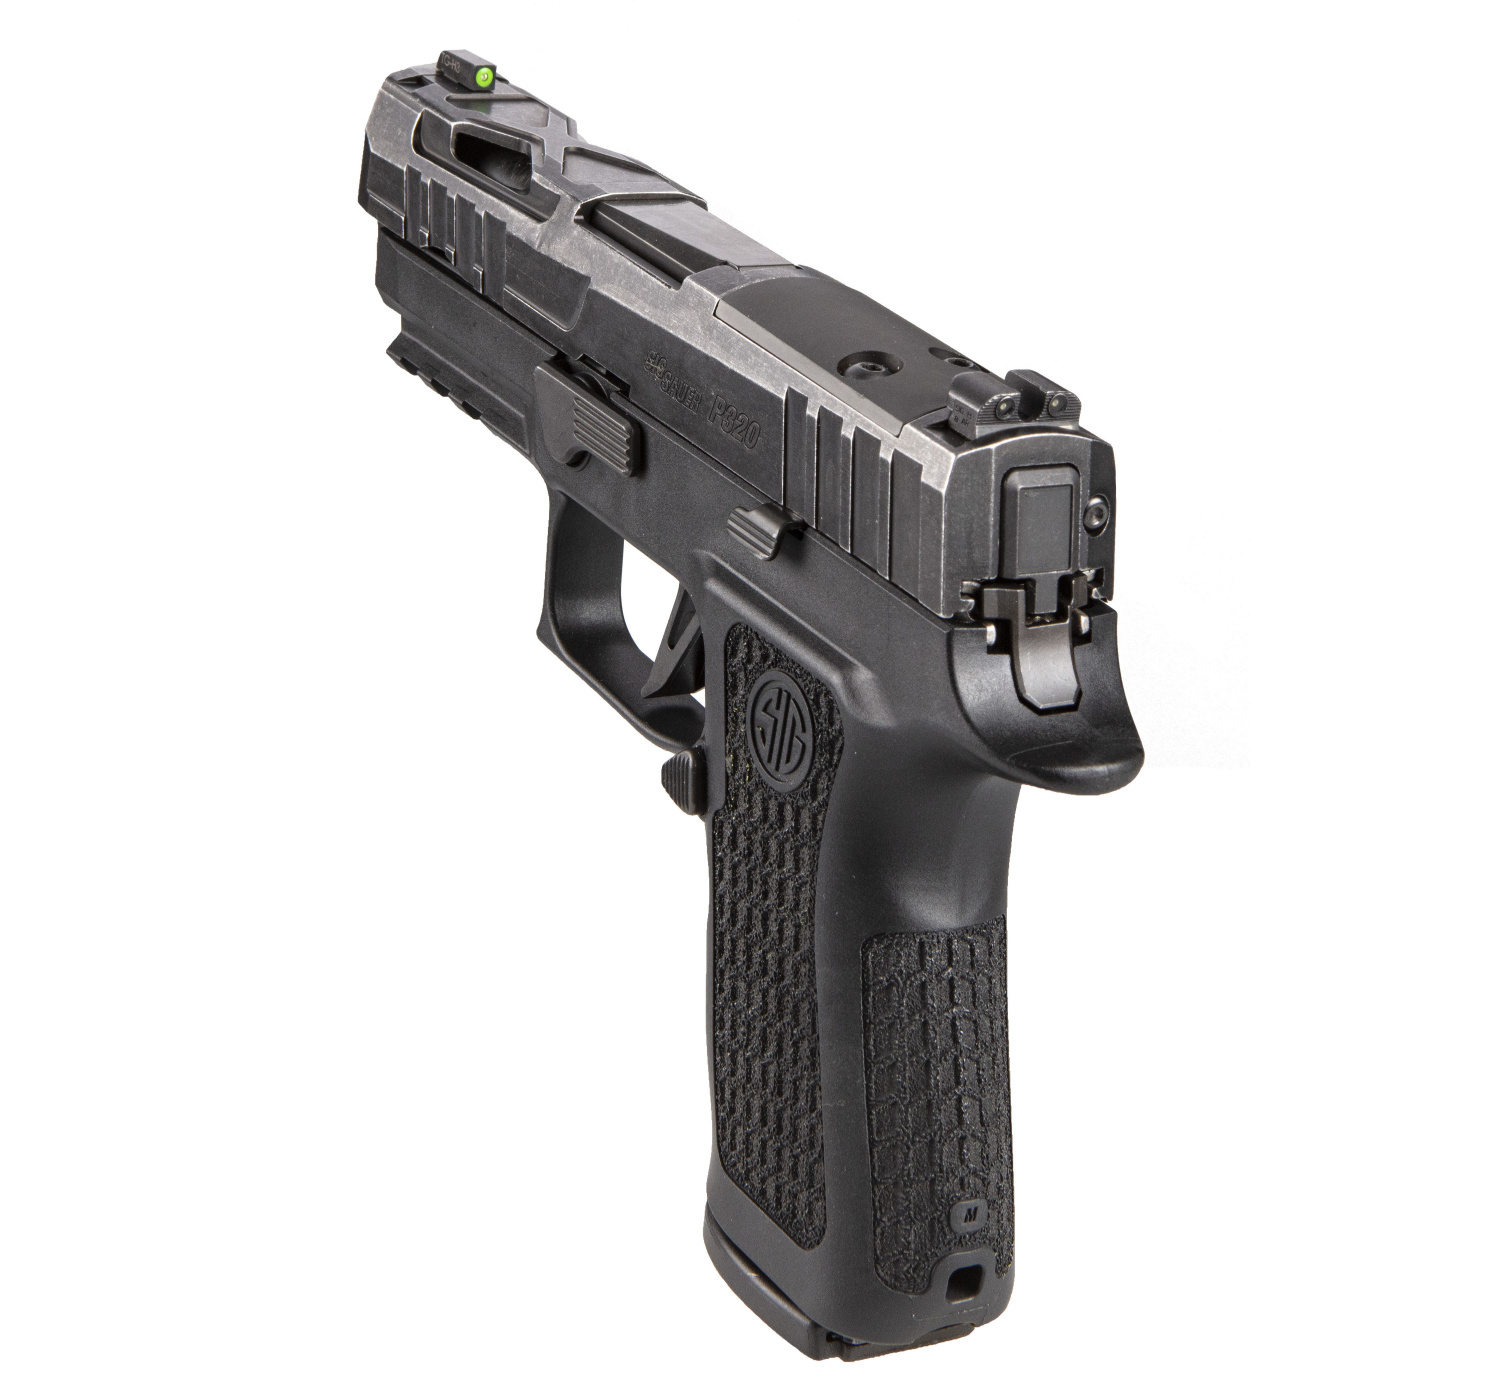 If you want some popular custom features without having to buy a standard P365XL or P320 and then send it to a third-party gunsmith, one of these guns may be just the ticket.